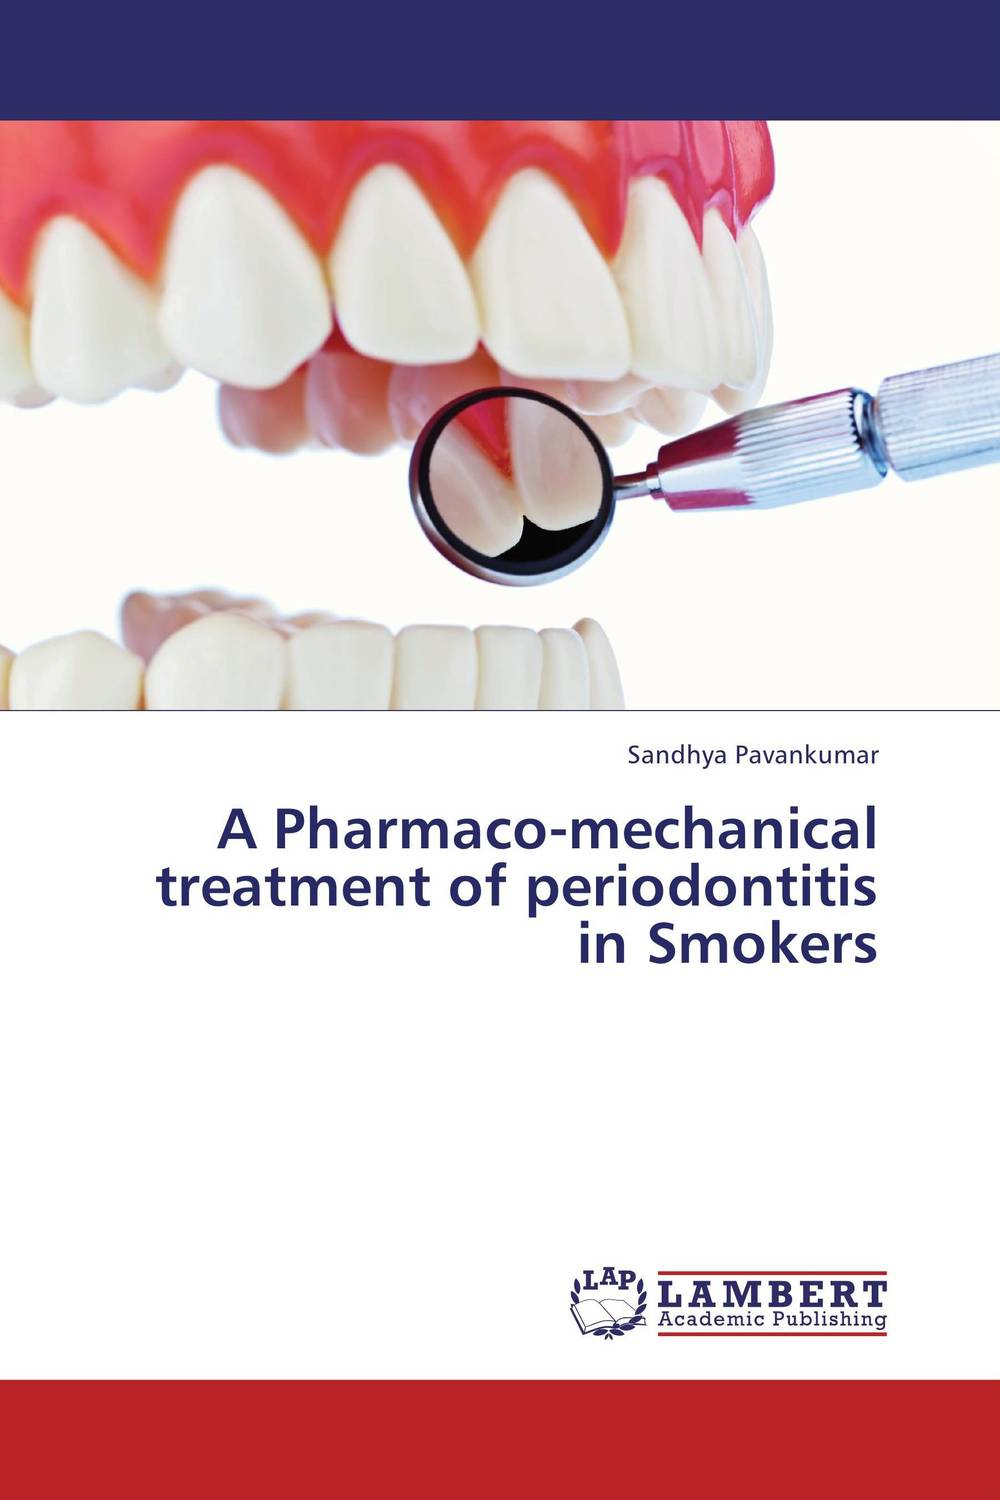 A Pharmaco-mechanical treatment of periodontitis in Smokers infrared allergic rhinitis treatment machine hay fever chronic rhinitis laser therapeutic apparatus